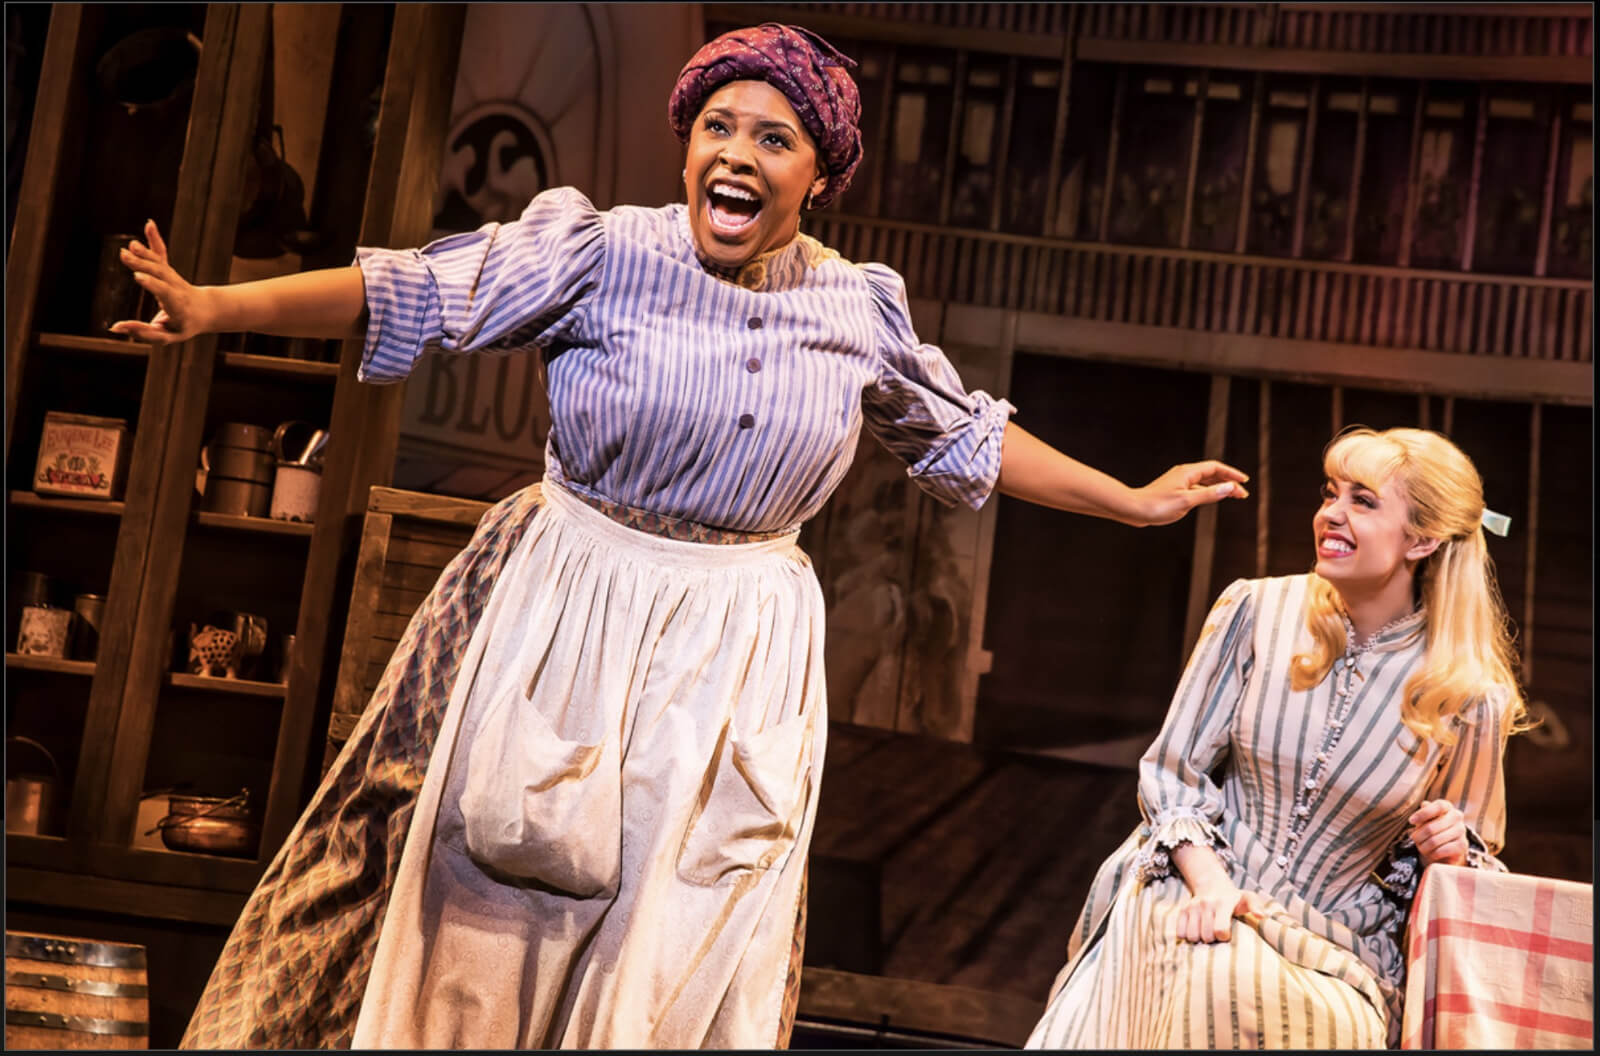 """Bryonha Marie Parham playing the role of Queenie from Showboat joyfully sings """"Can't Help Lovin' Dat Man of Mine"""". Kaley Ann Voorhees as Magnolia looks on in Prince of Broadway."""